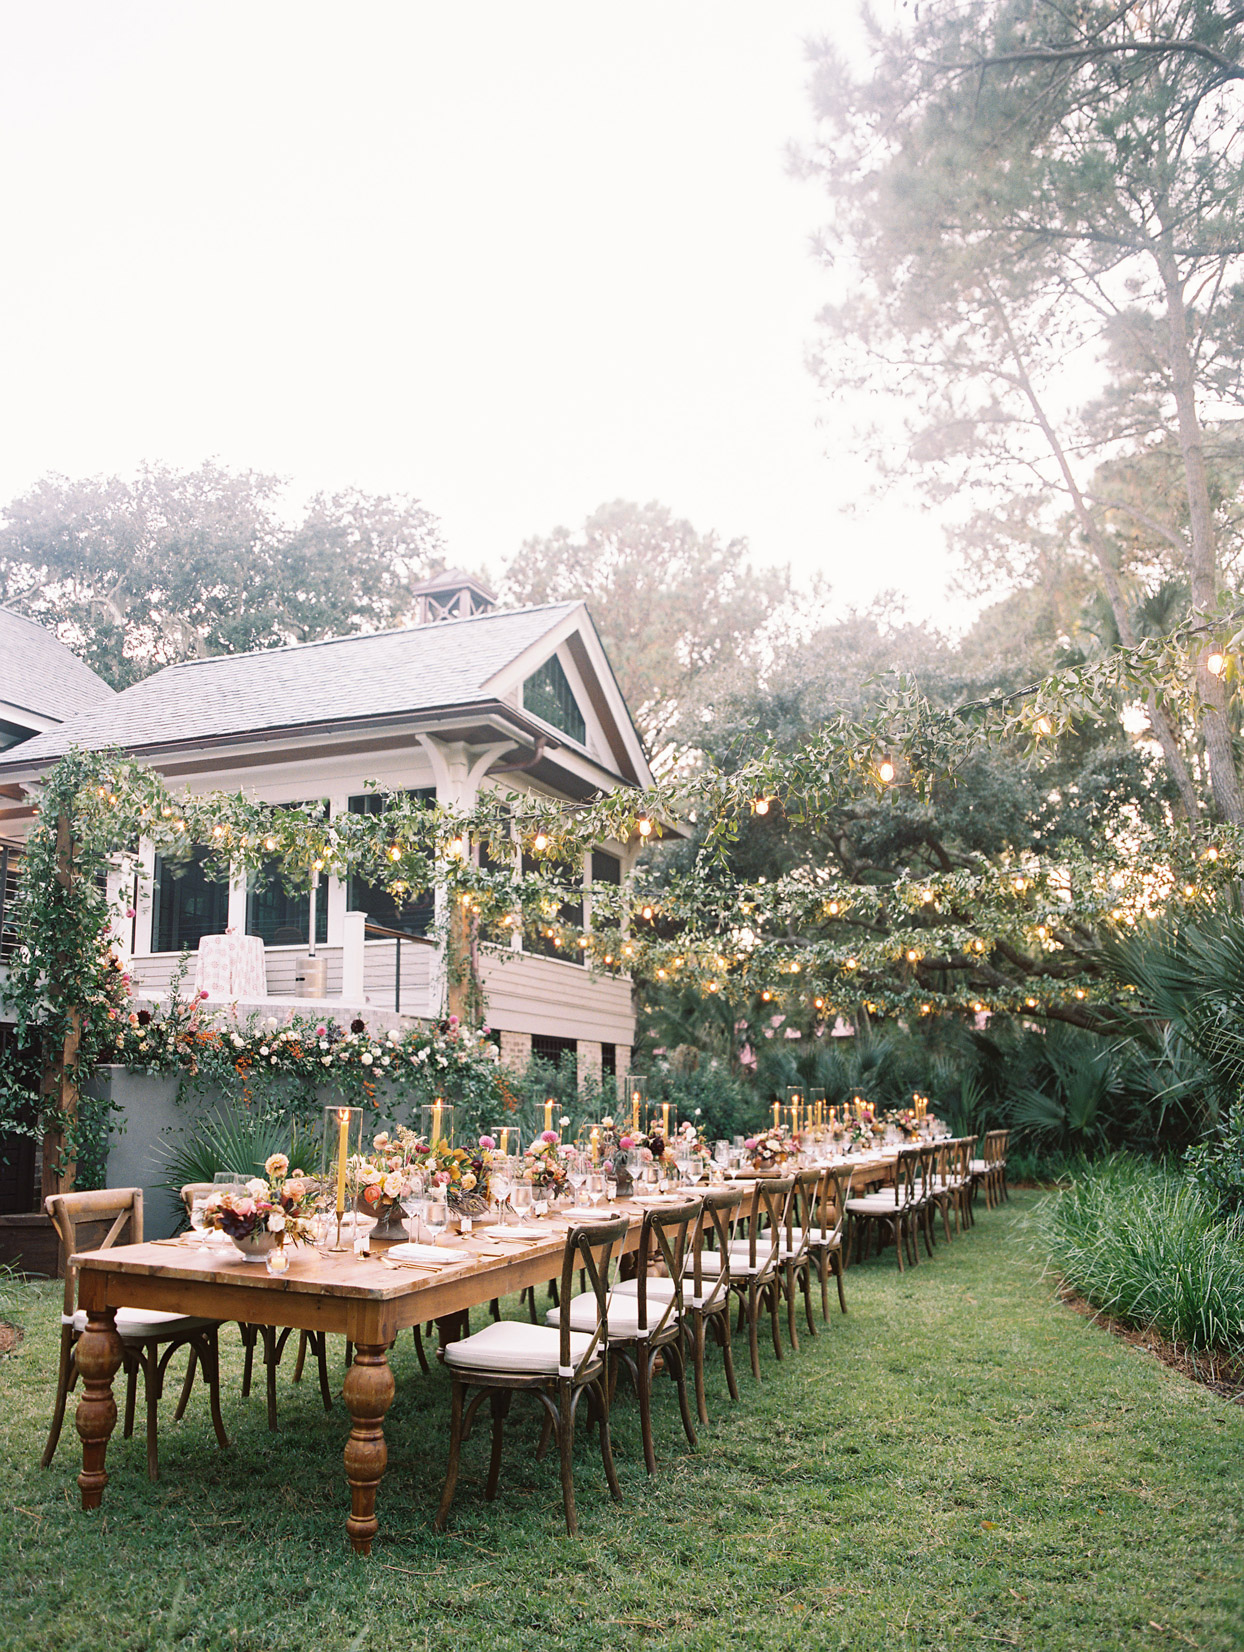 elegant rustic outdoor reception set up with long wooden tables and lit greenery garlands